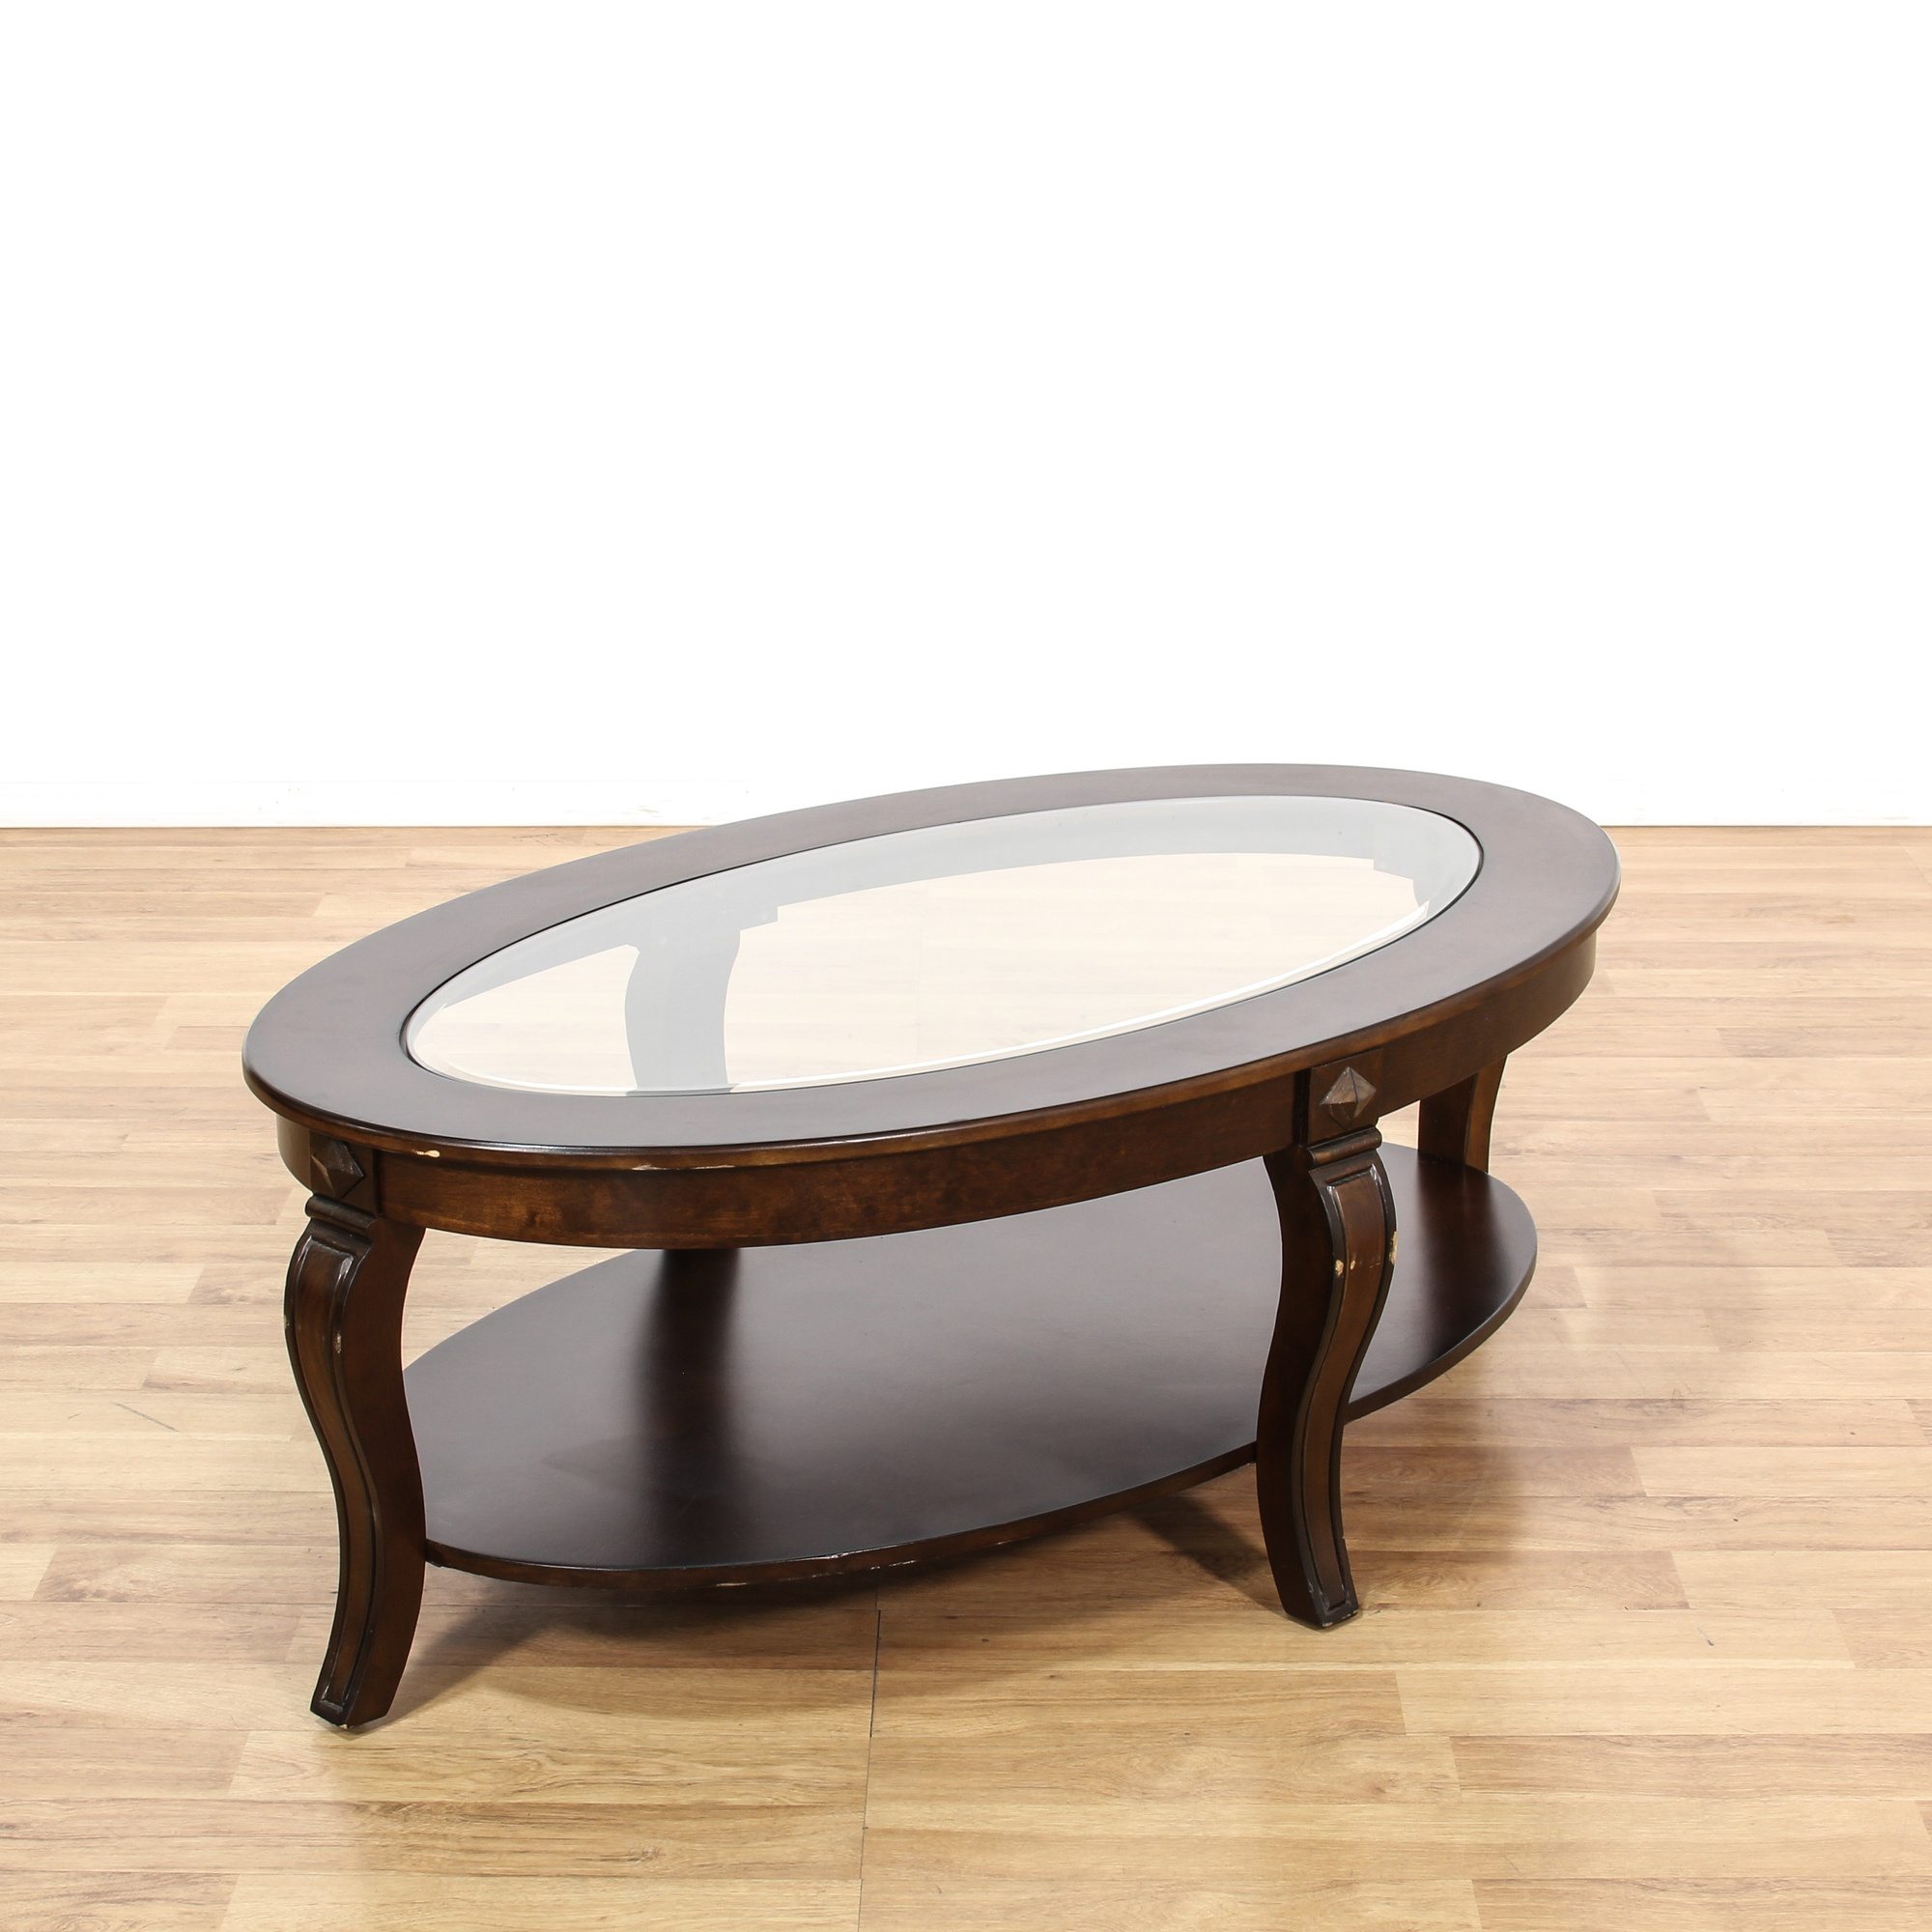 Stained Glass Coffee Table Book: Oval Dark Stained Glass Top Coffee Table